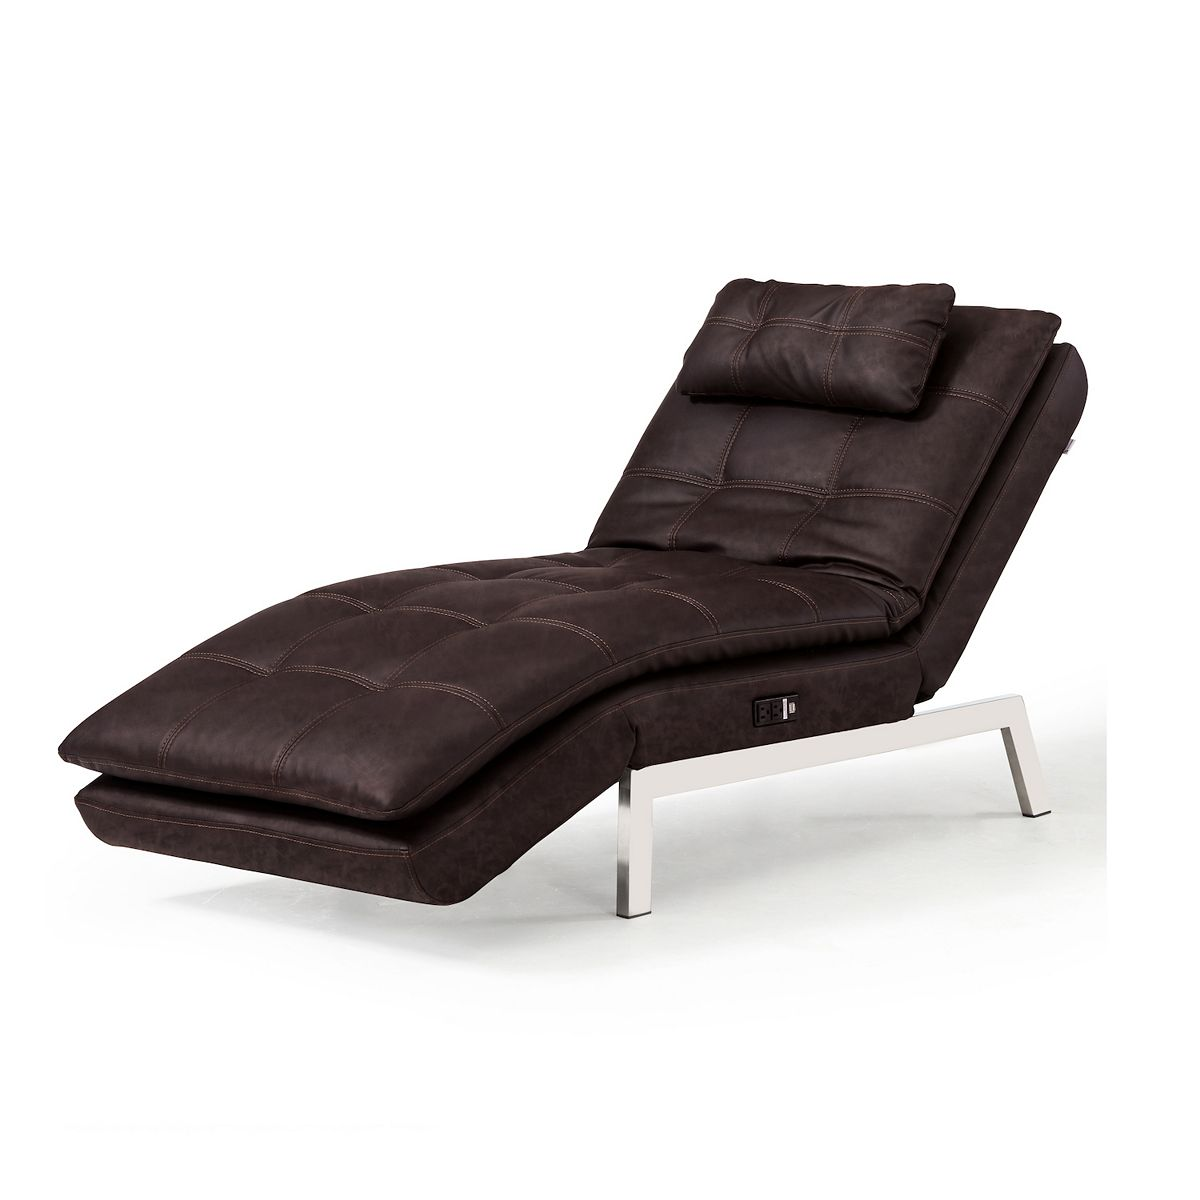 Relax A Lounger Arnold Convertible Chaise Lounge / Sleeper w/ USB